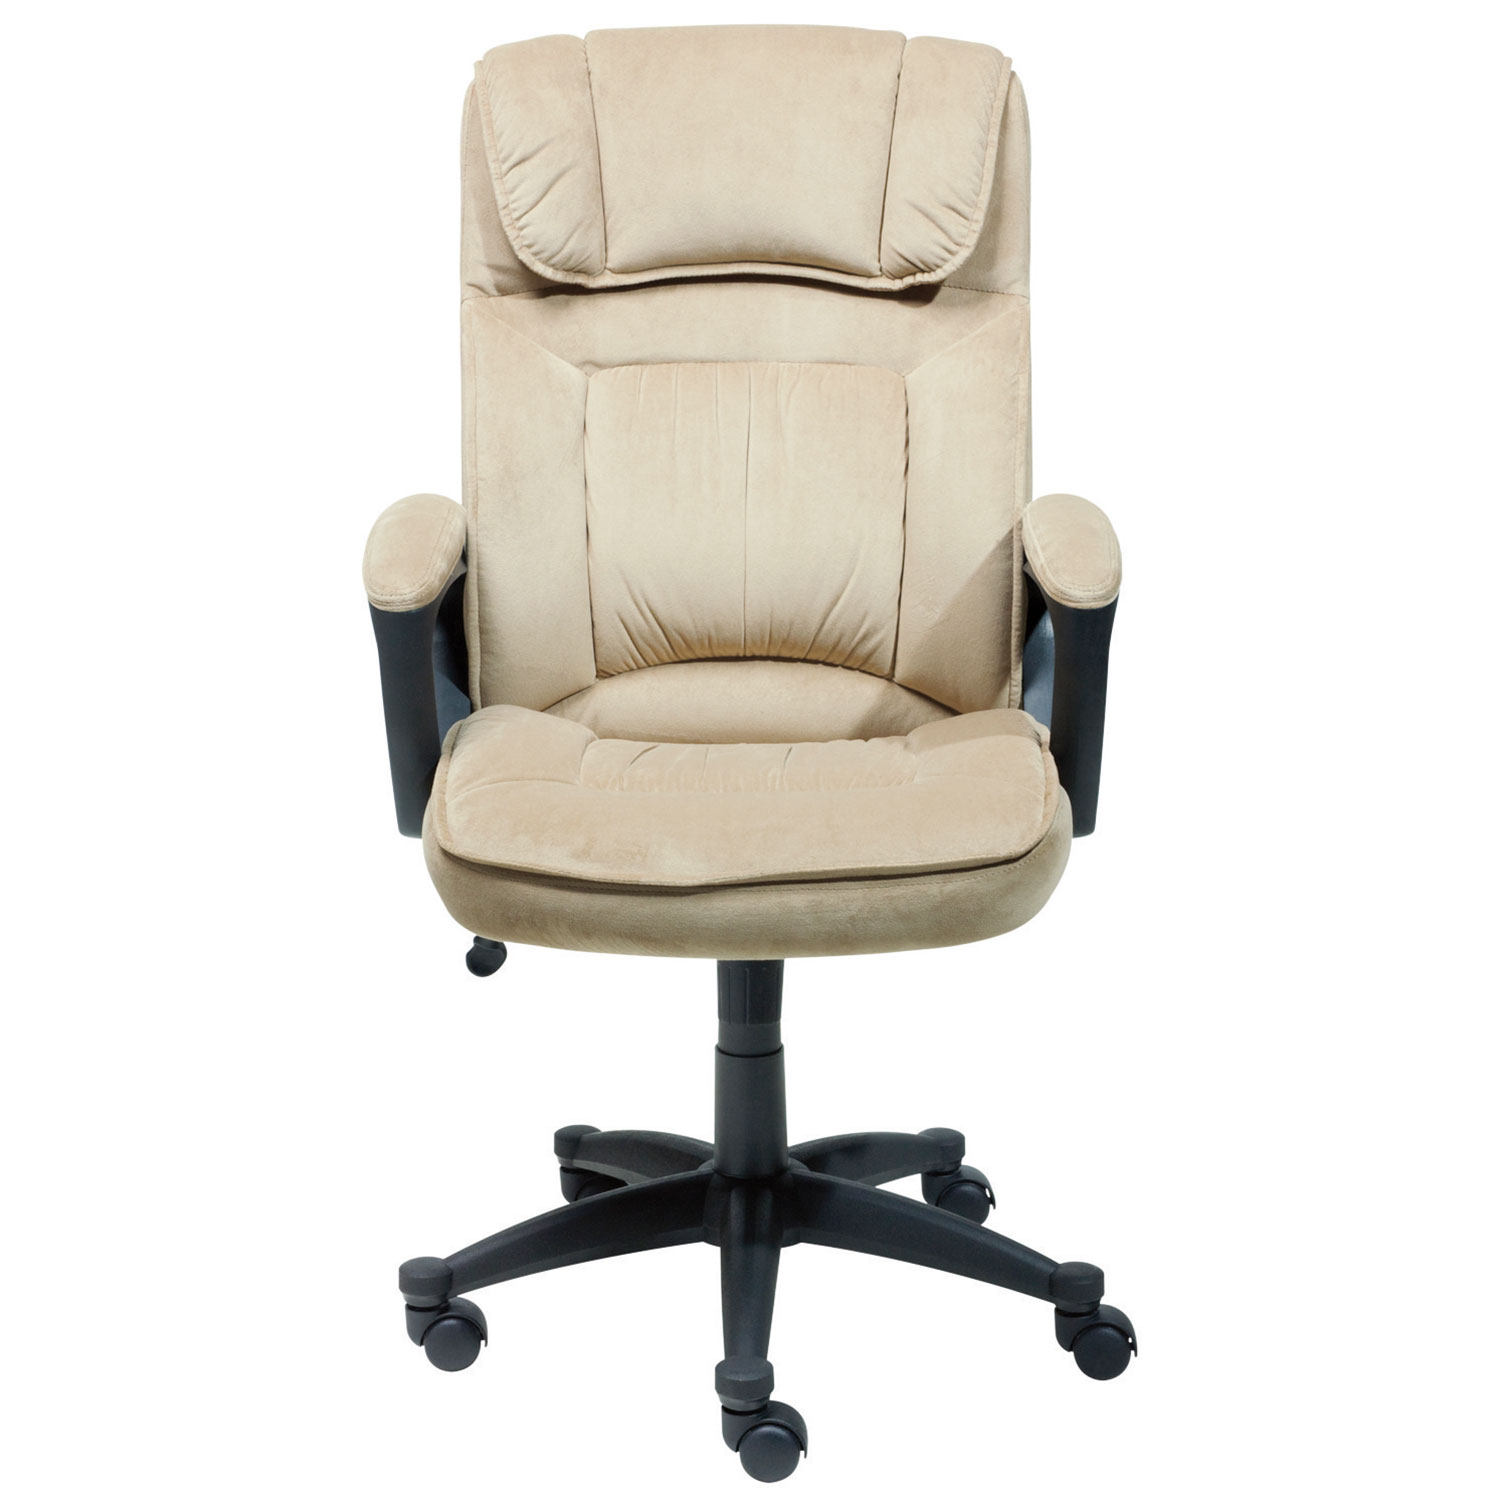 Thomasville Microfiber Manager & Executive Chair Beige fice